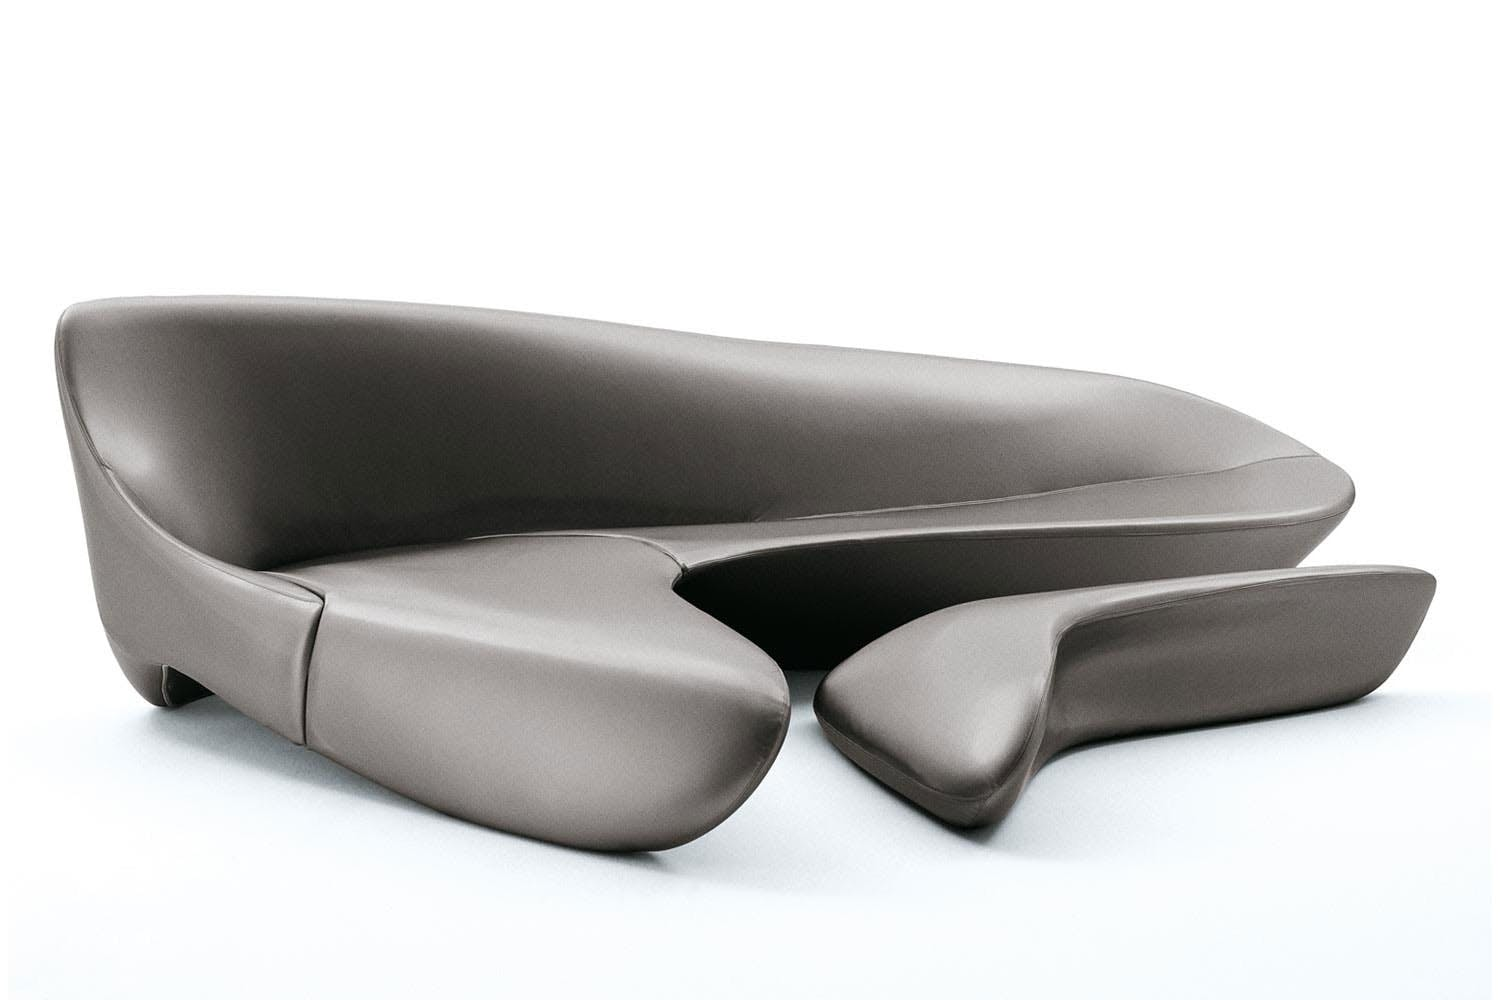 moon system sofa by zaha hadid for b b italia space furniture. Black Bedroom Furniture Sets. Home Design Ideas